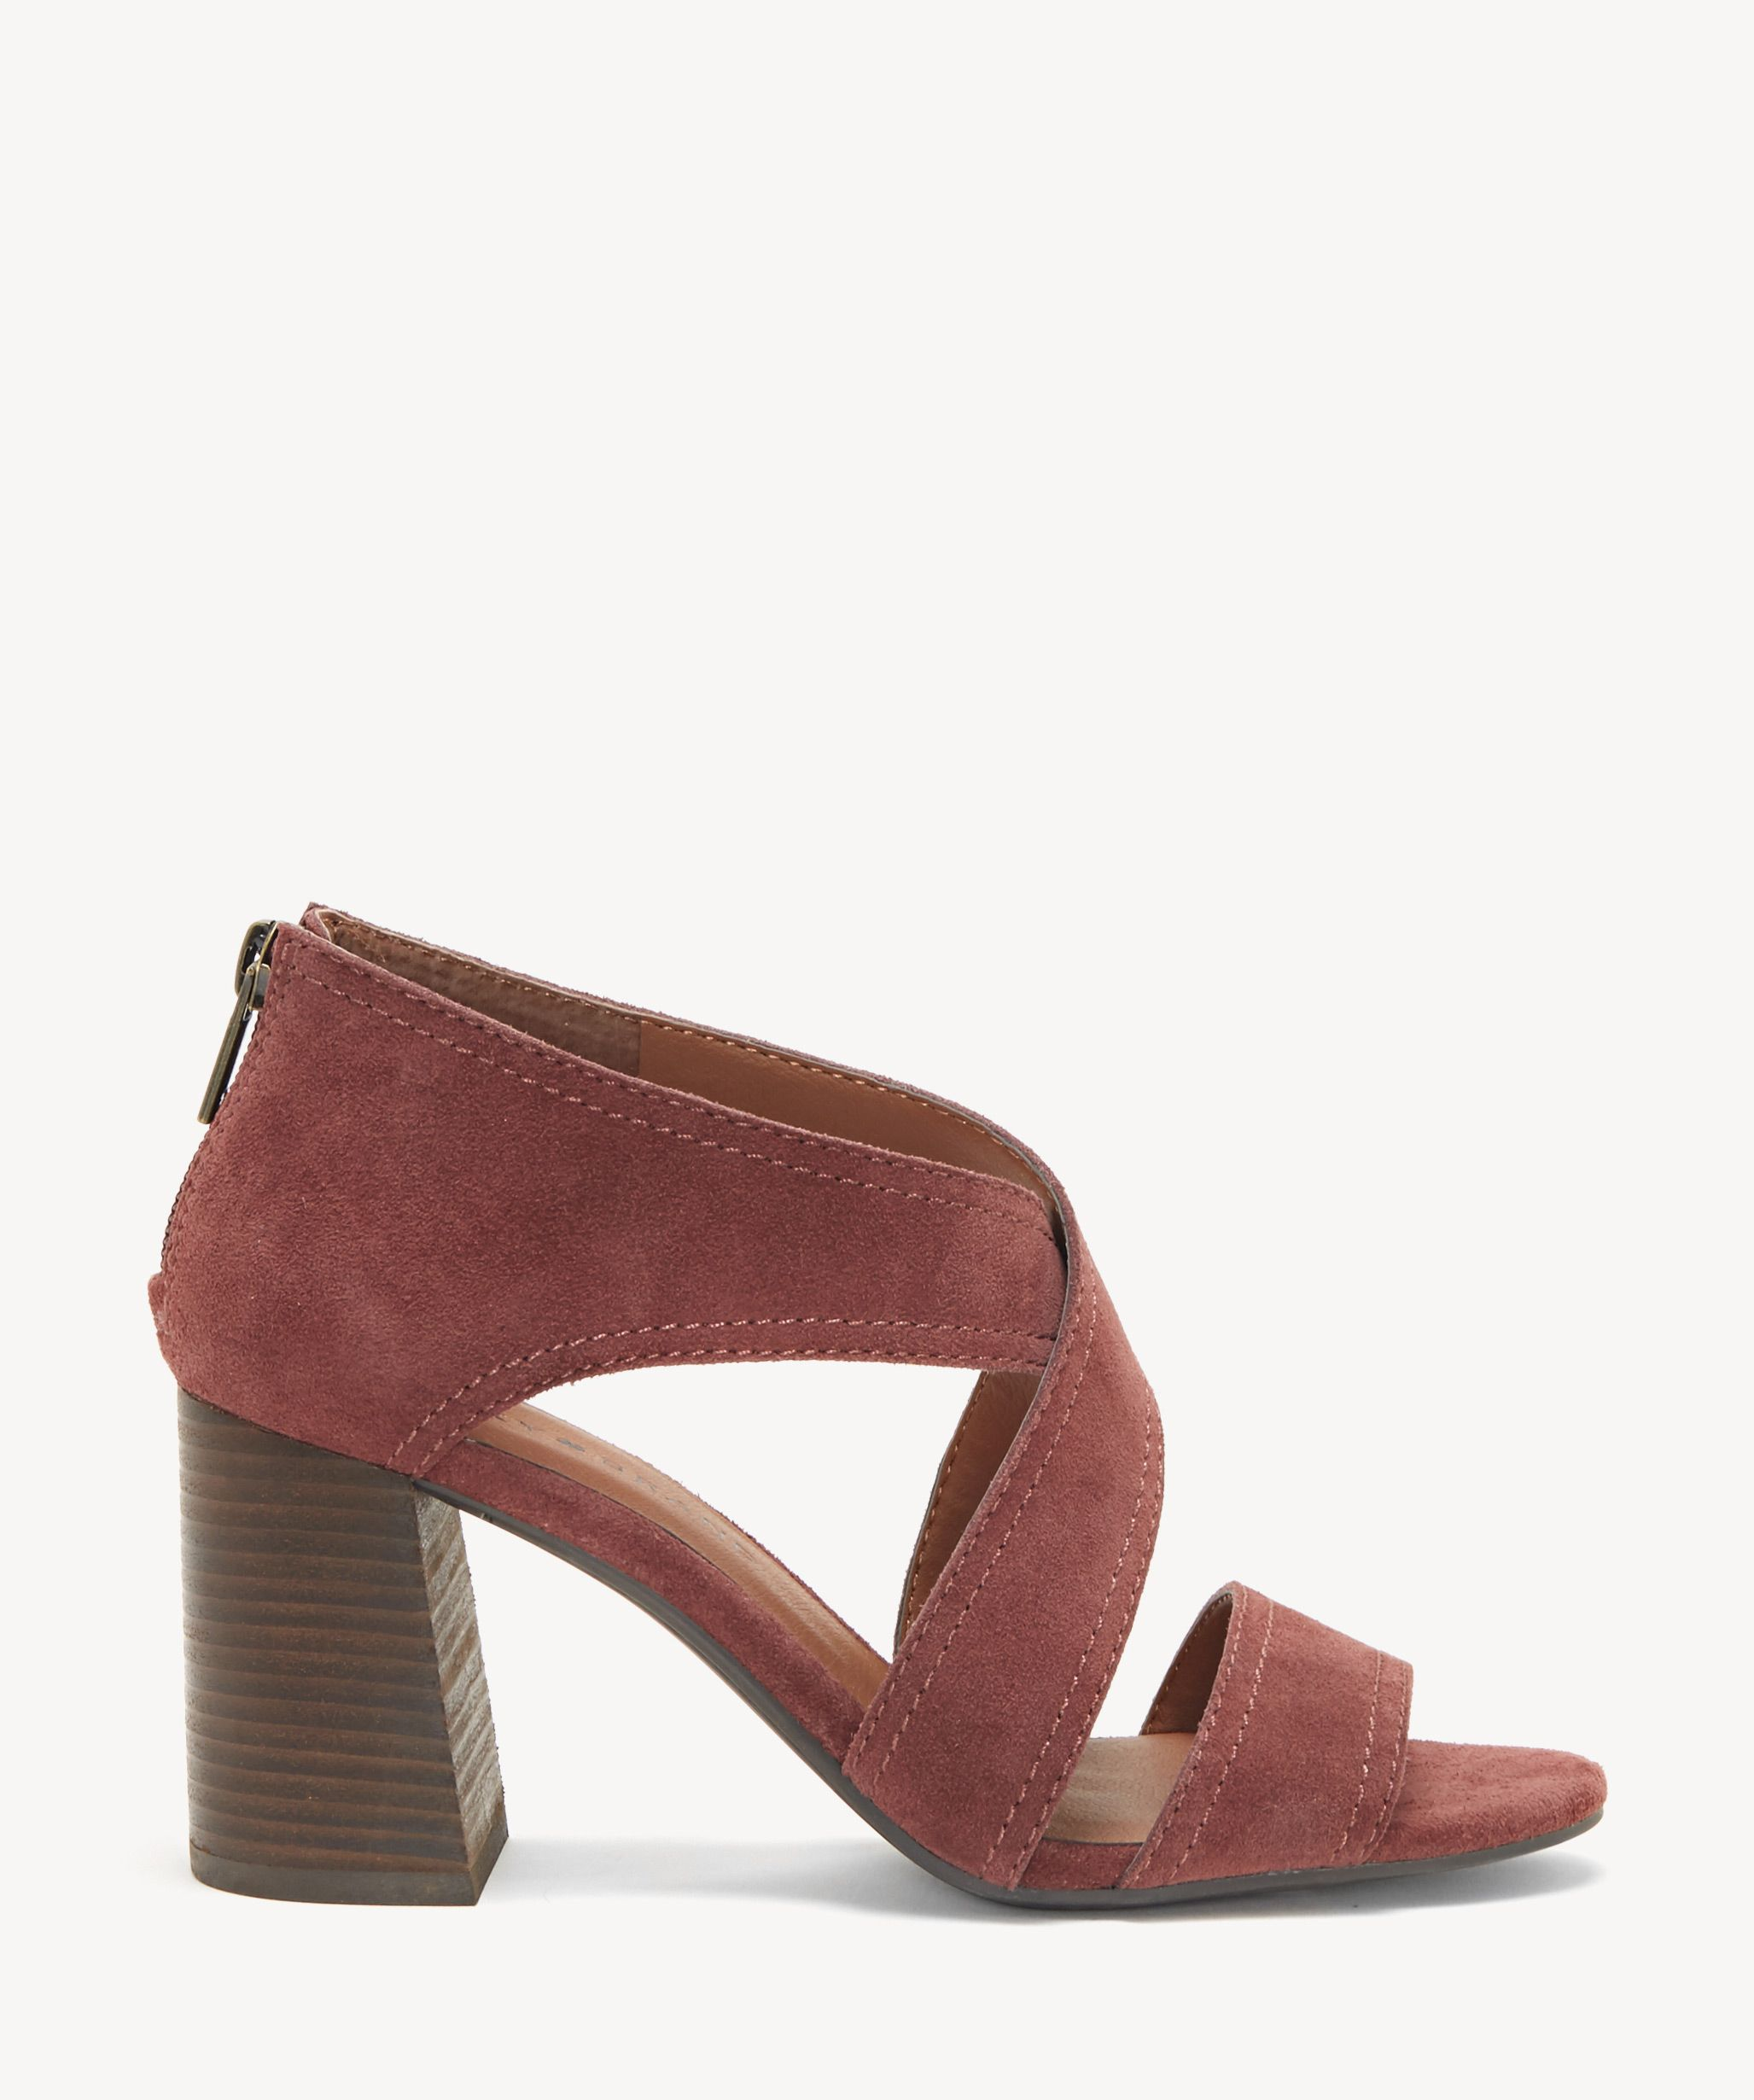 b73cf7834656 Lucky Brand Women s Vidva Criss Cross Sandals In Color  Burgundy